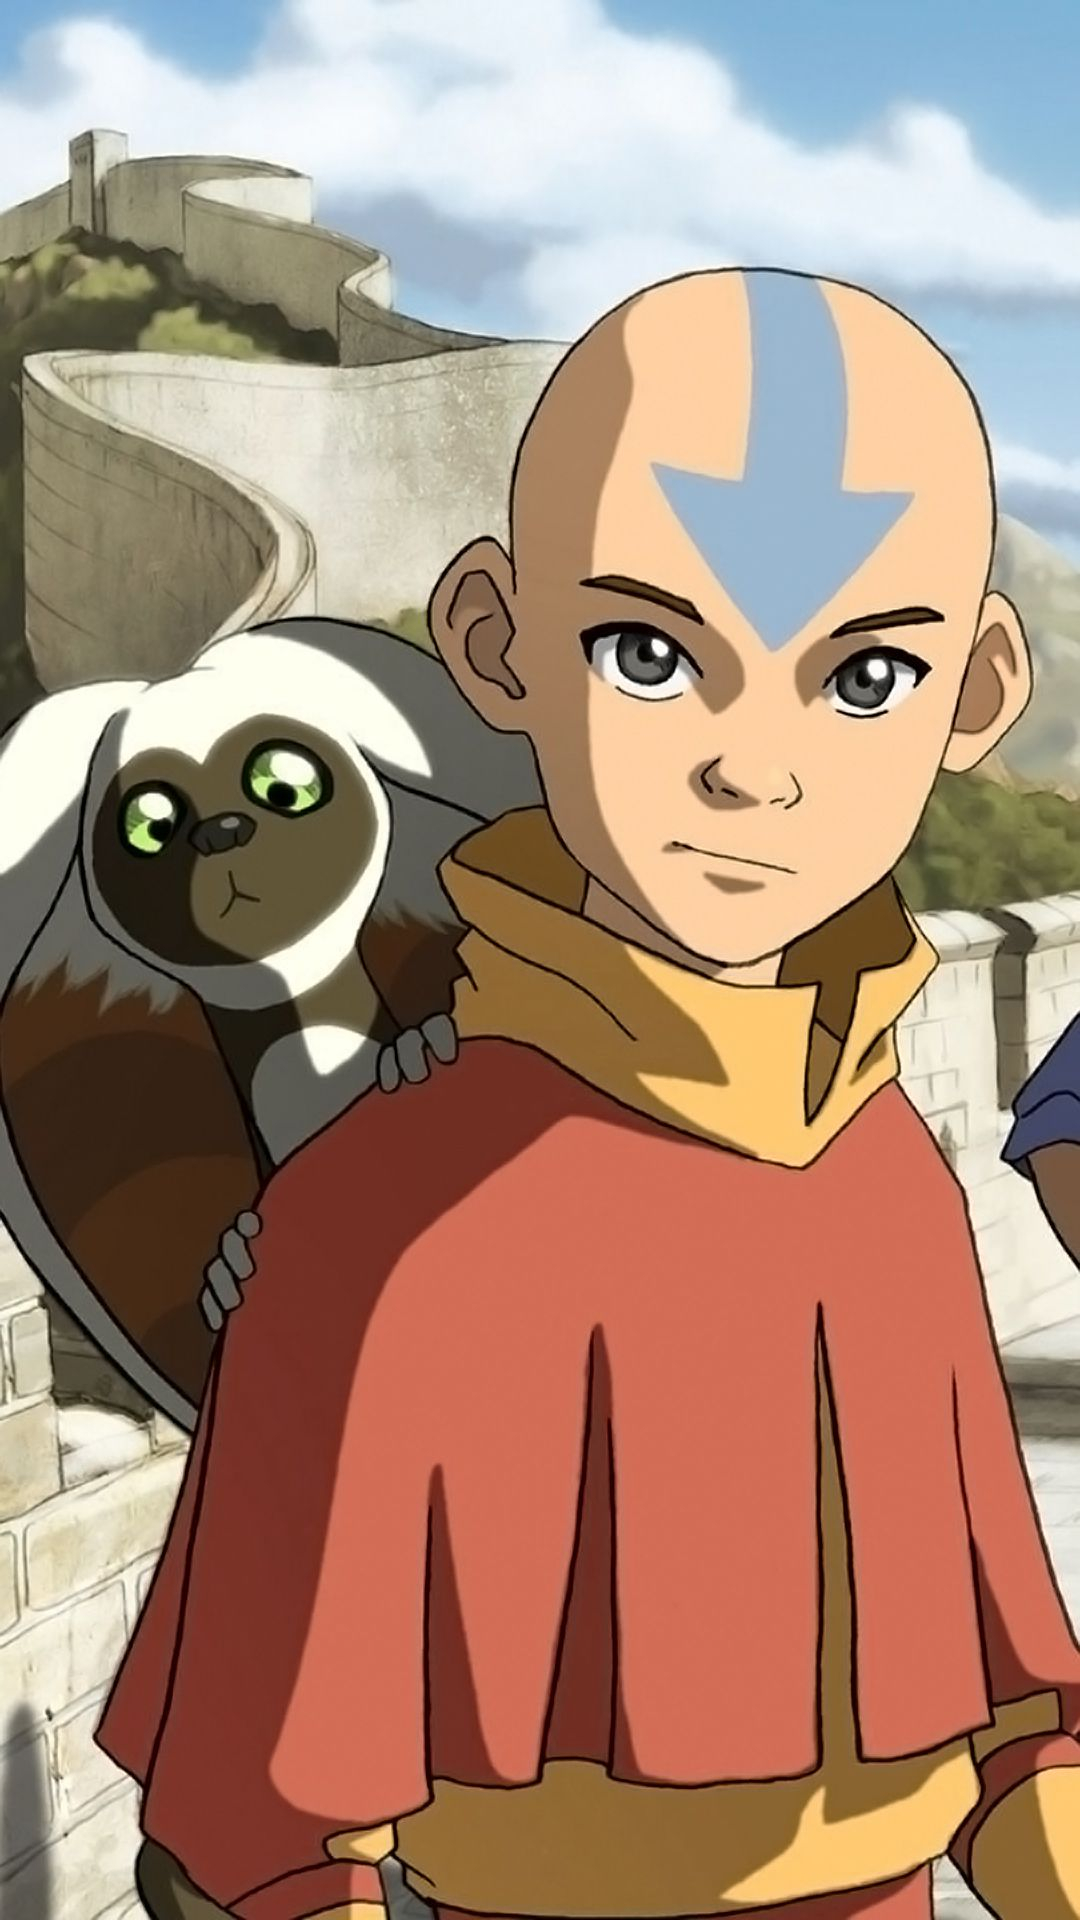 Avatar The Last Airbender Wallpaper HD for Android